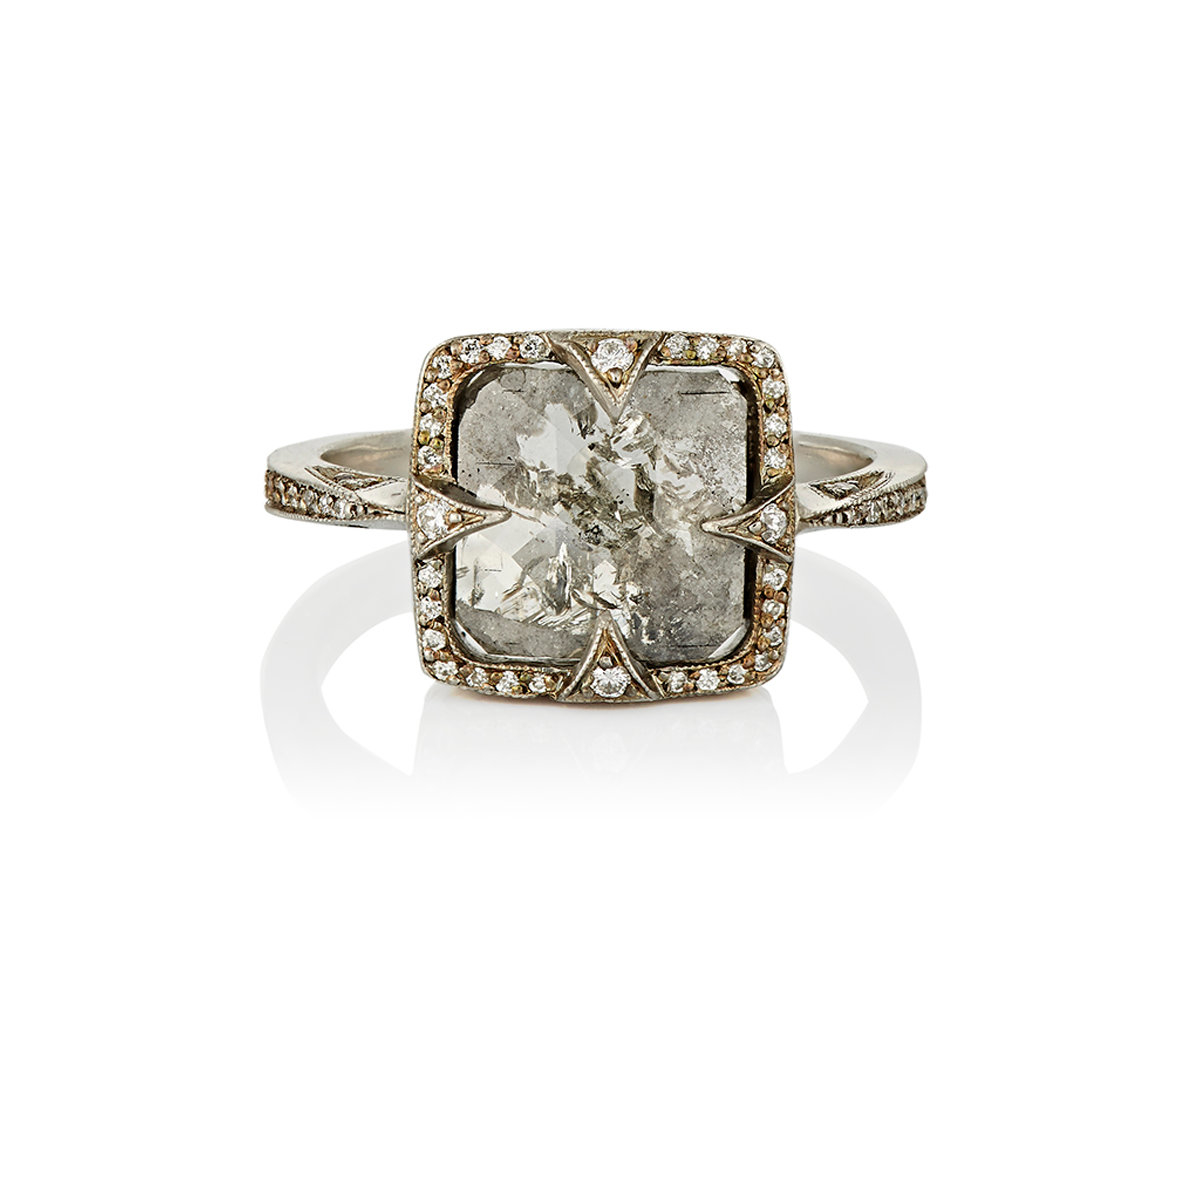 Lyst Cathy Waterman Rustic Diamond Ring in Metallic